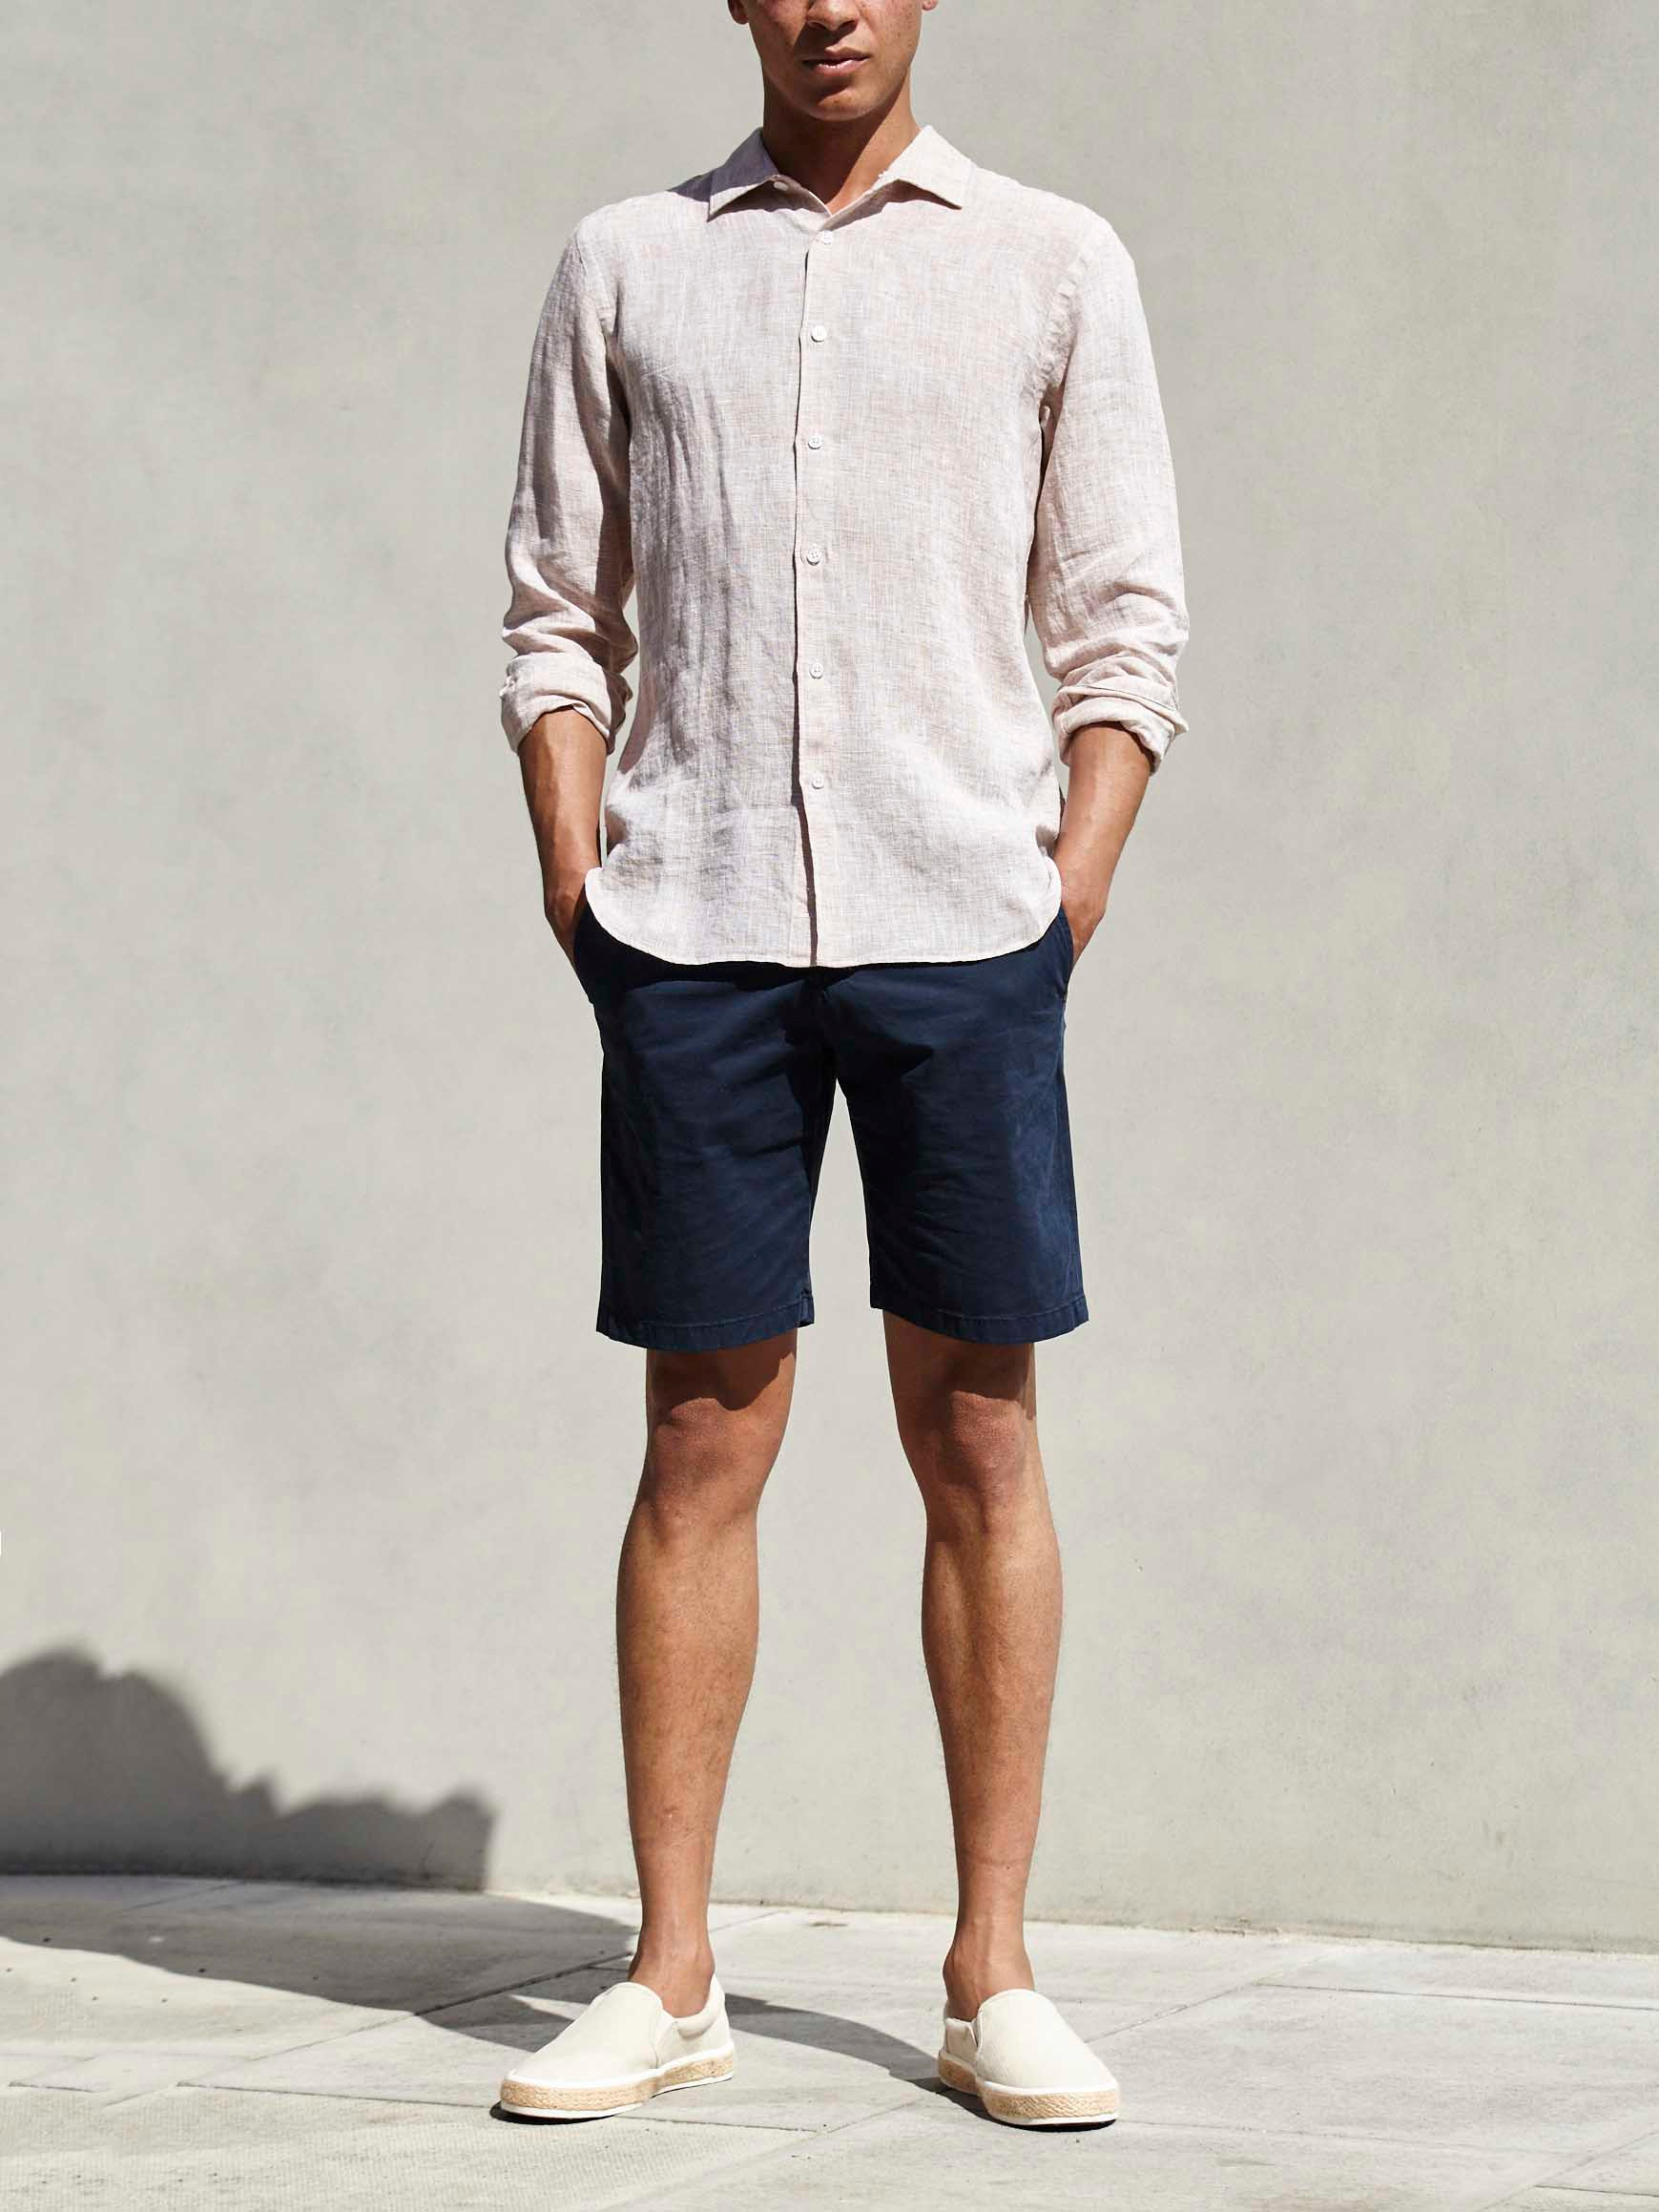 Men's outfit idea for 2021 with linen shirt, navy shorts, tortoiseshell sunglasses, espadrilles. Suitable for summer.